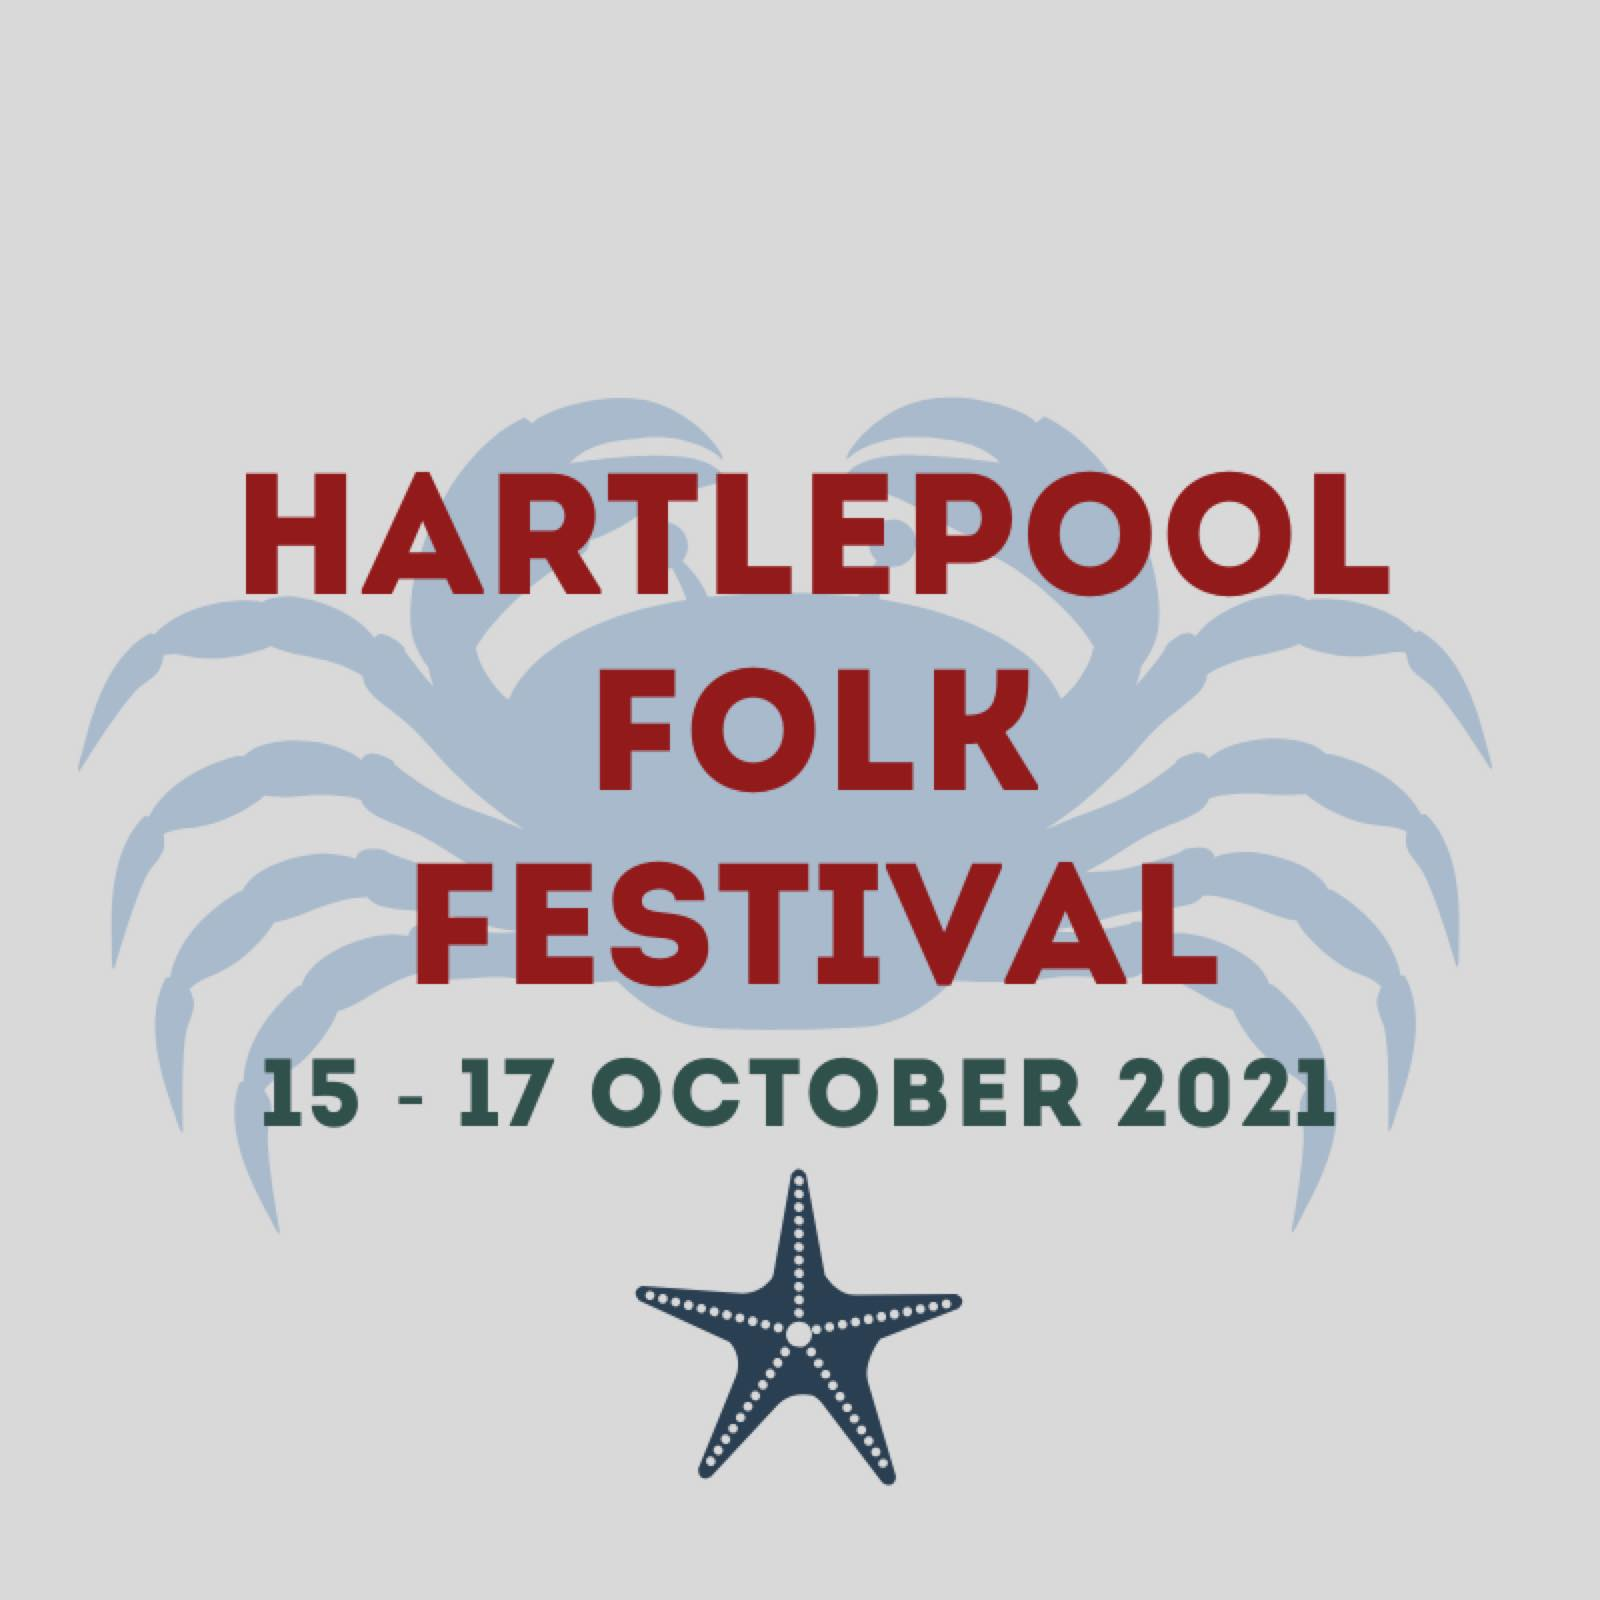 Hartlepool Festival postponed to 2021